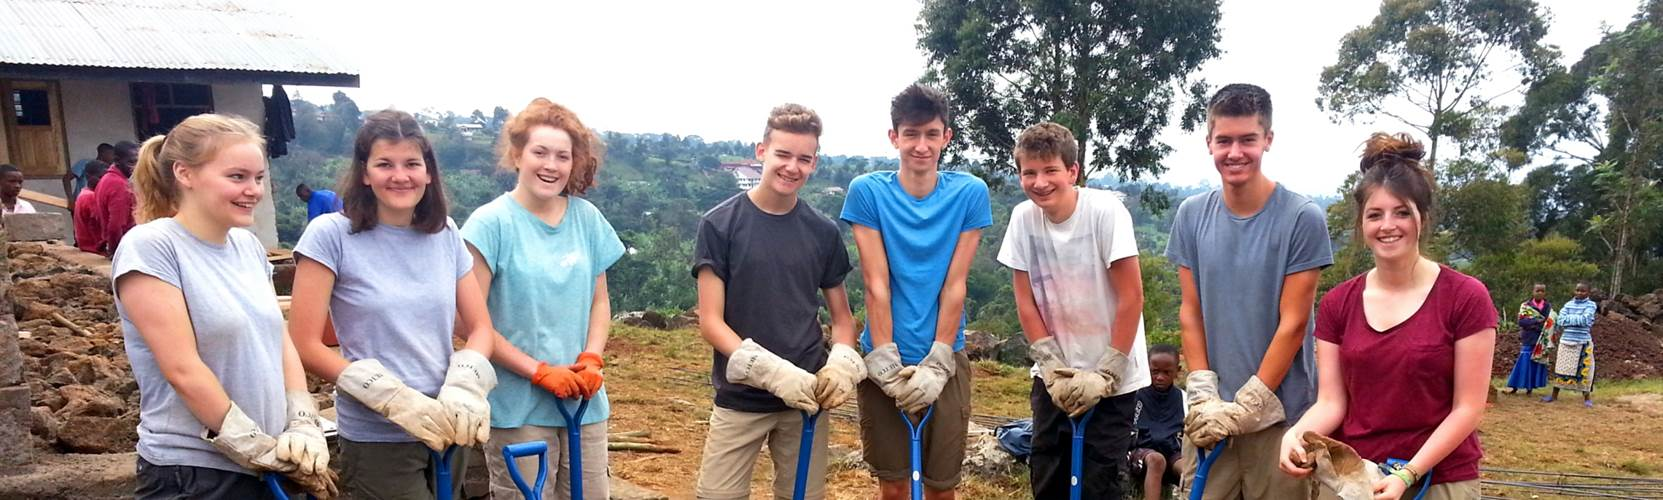 Tanzania School Expedition building work mixing mortar